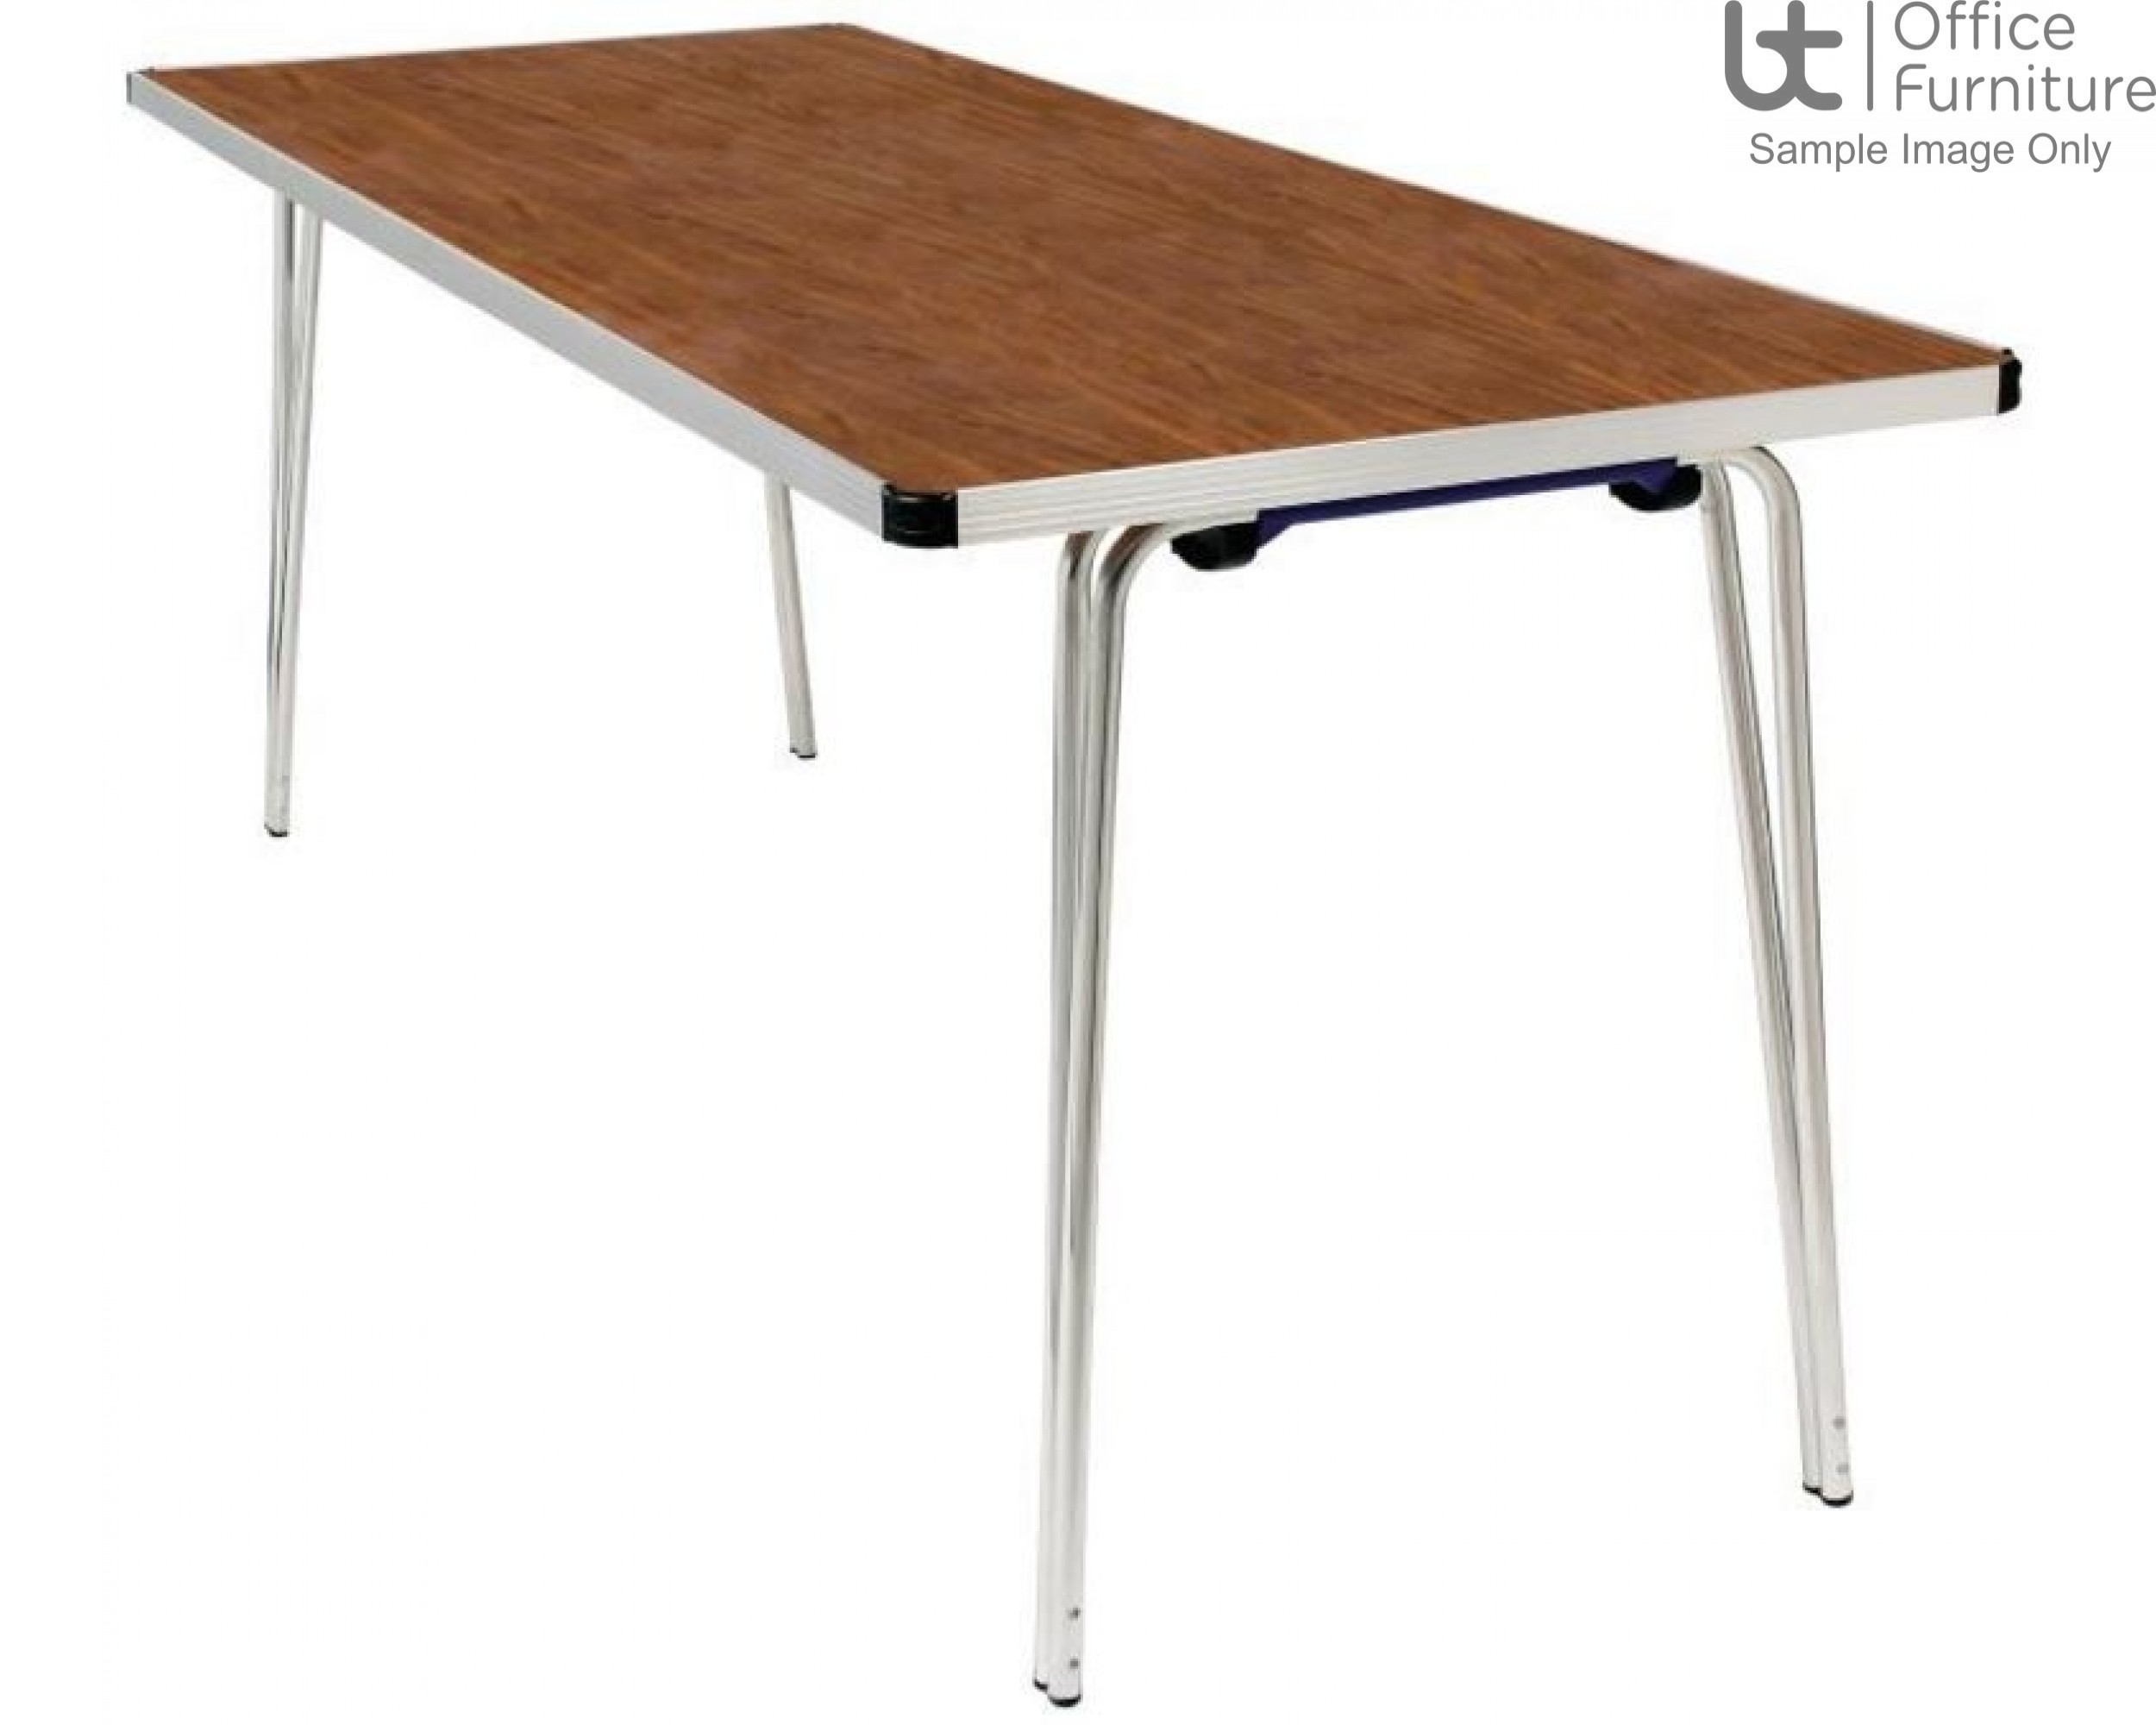 Contour Dining/Cafeteria/Canteen Folding Tables - 1520mm Wide